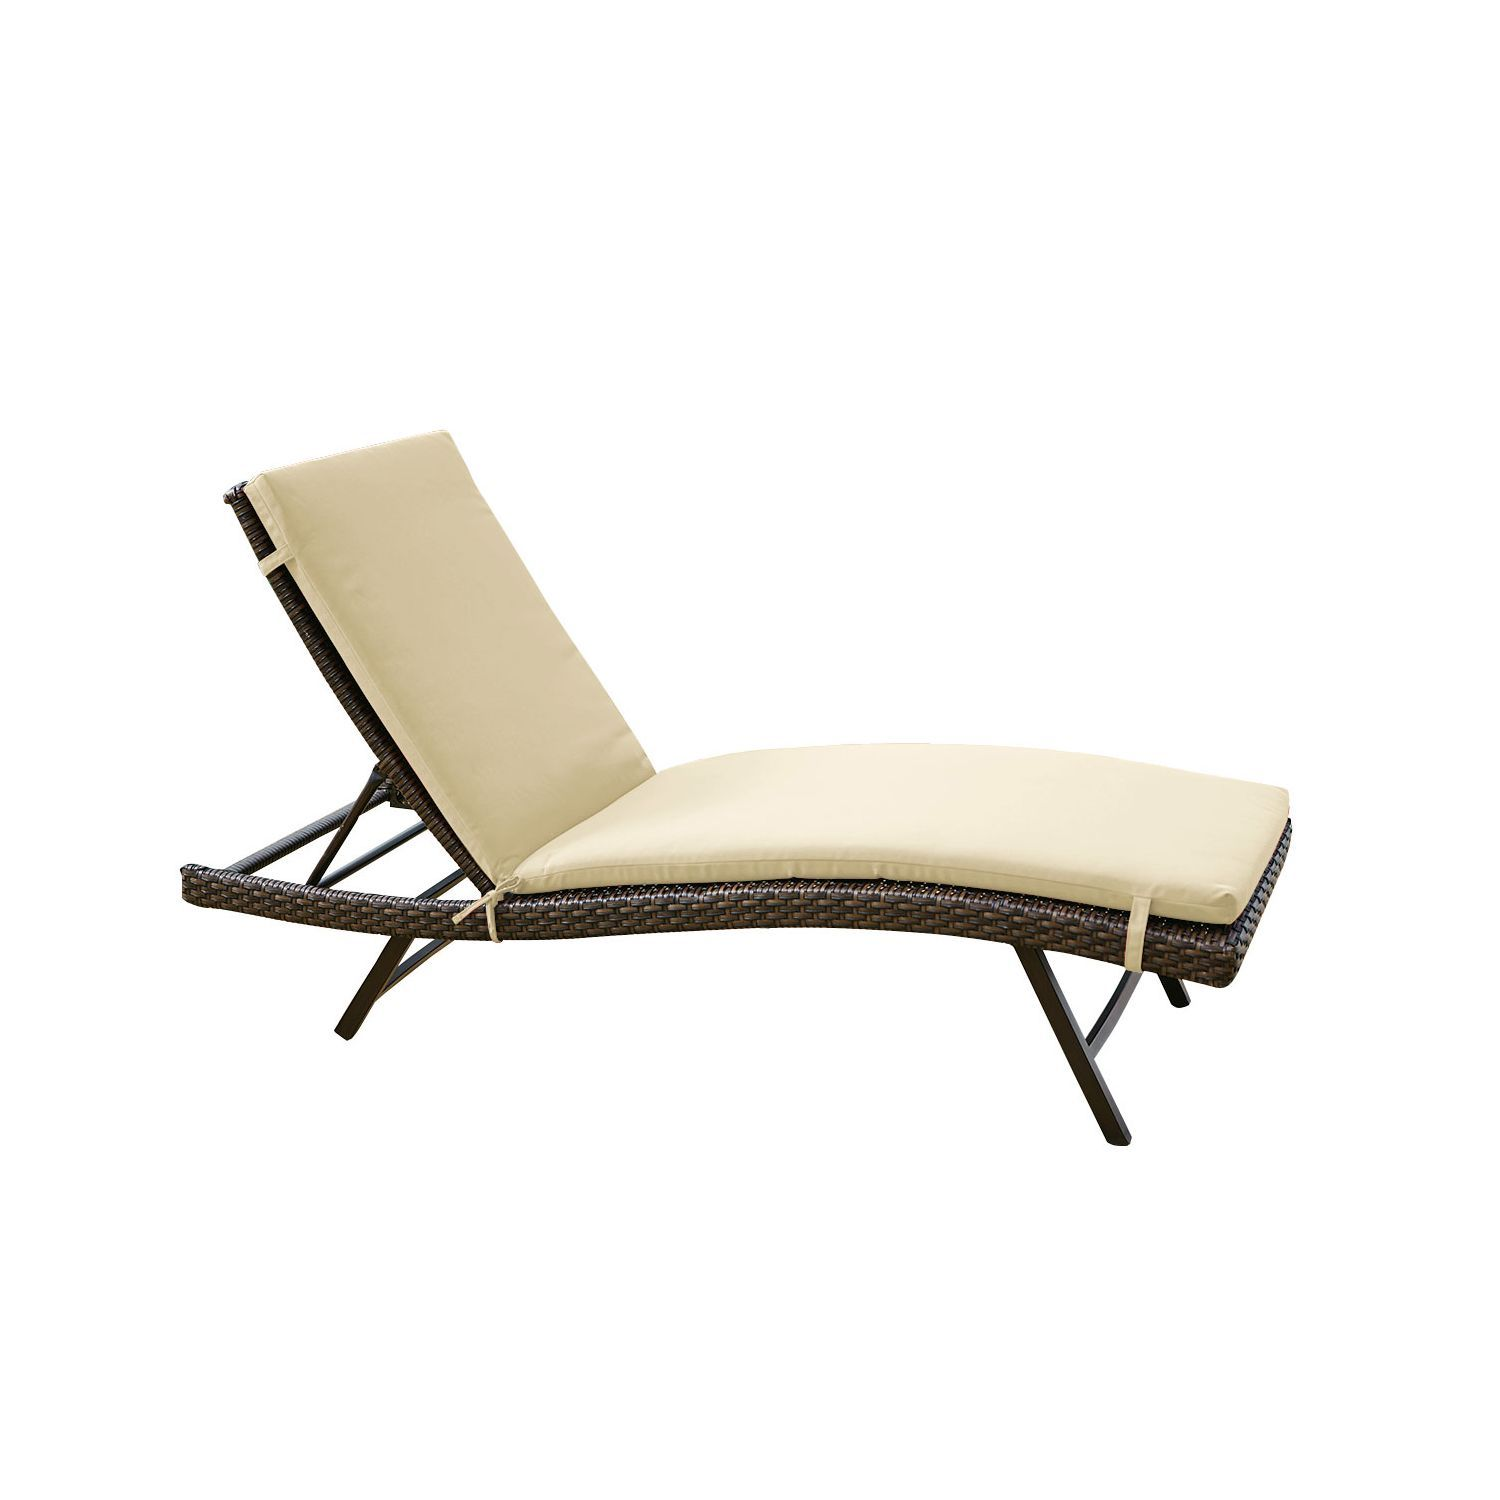 Member S Mark 2 Pk Chaise Lounge Cushions In Assorted Colors Sam S Club Chaise Lounge Cushions Chaise Cushions Chaise Lounge